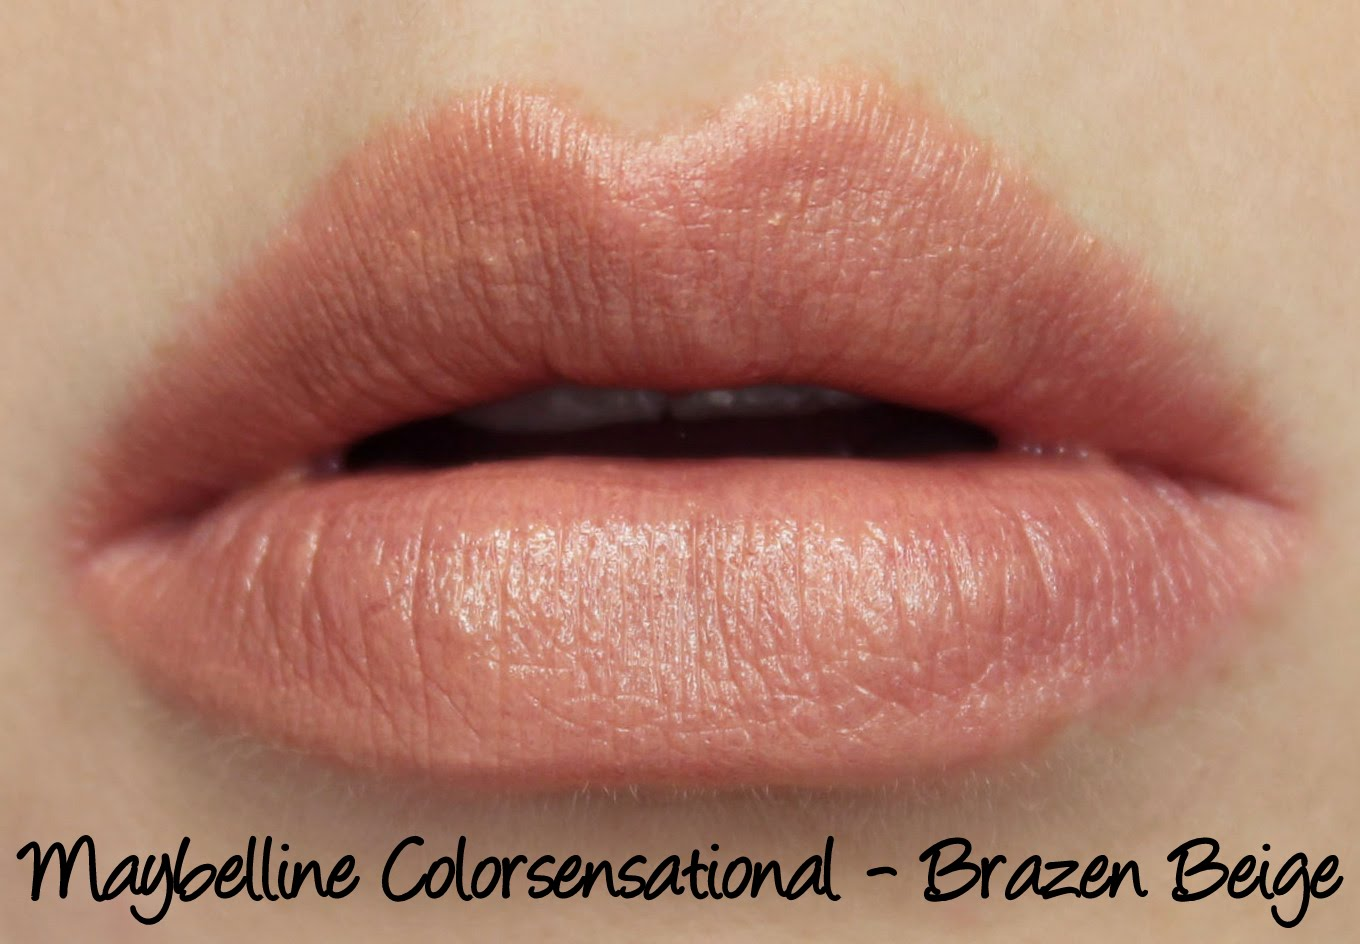 Maybelline Colorsensational Stripped Nudes Sultry Sand Lipstik Brazen Beige Lipstick Swatches Review